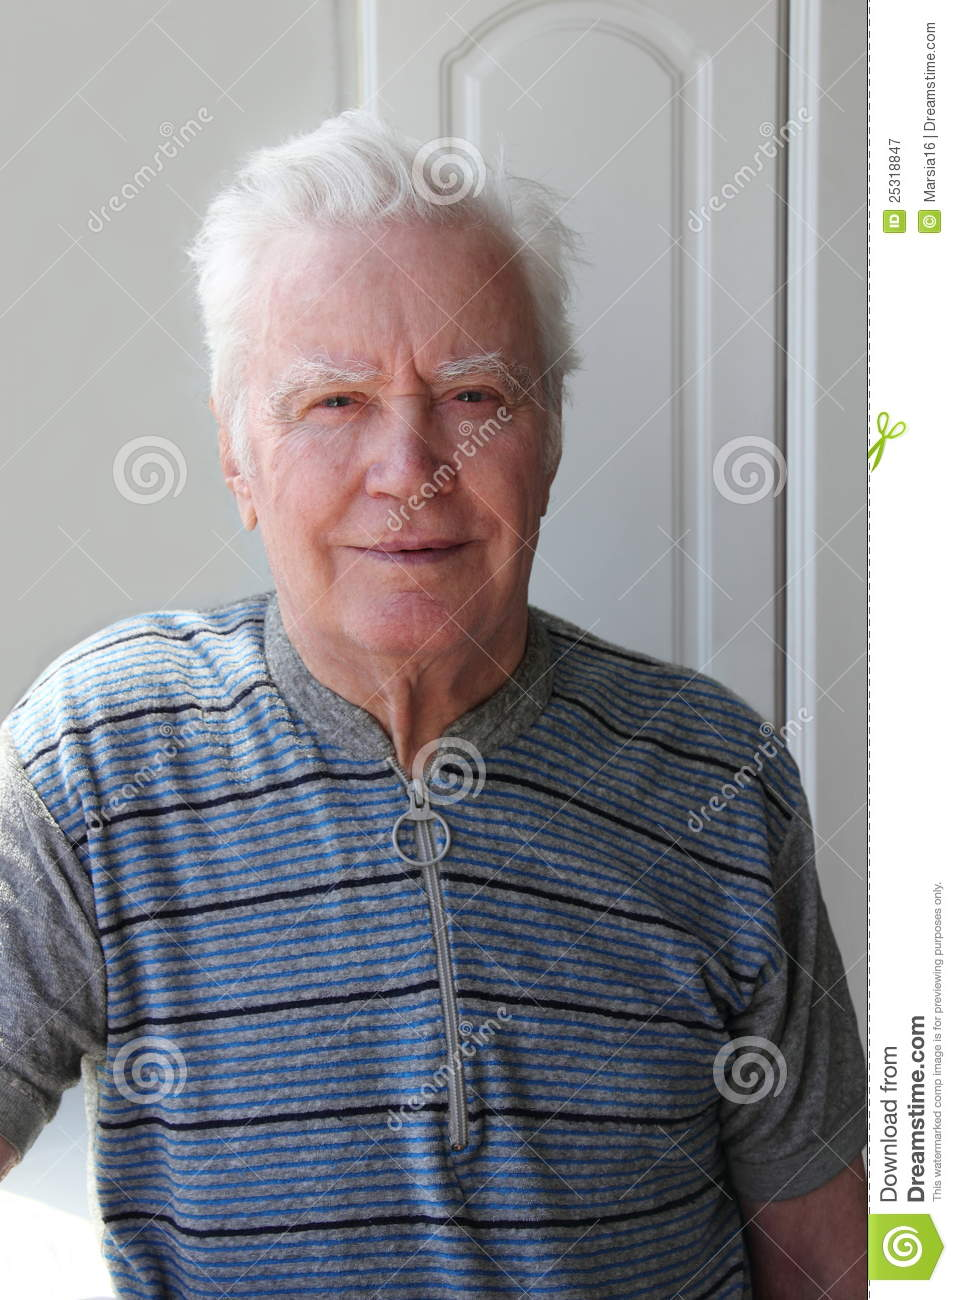 82-year-old Smiling Man Royalty Free Stock Photography ... Young Businessman Fashion